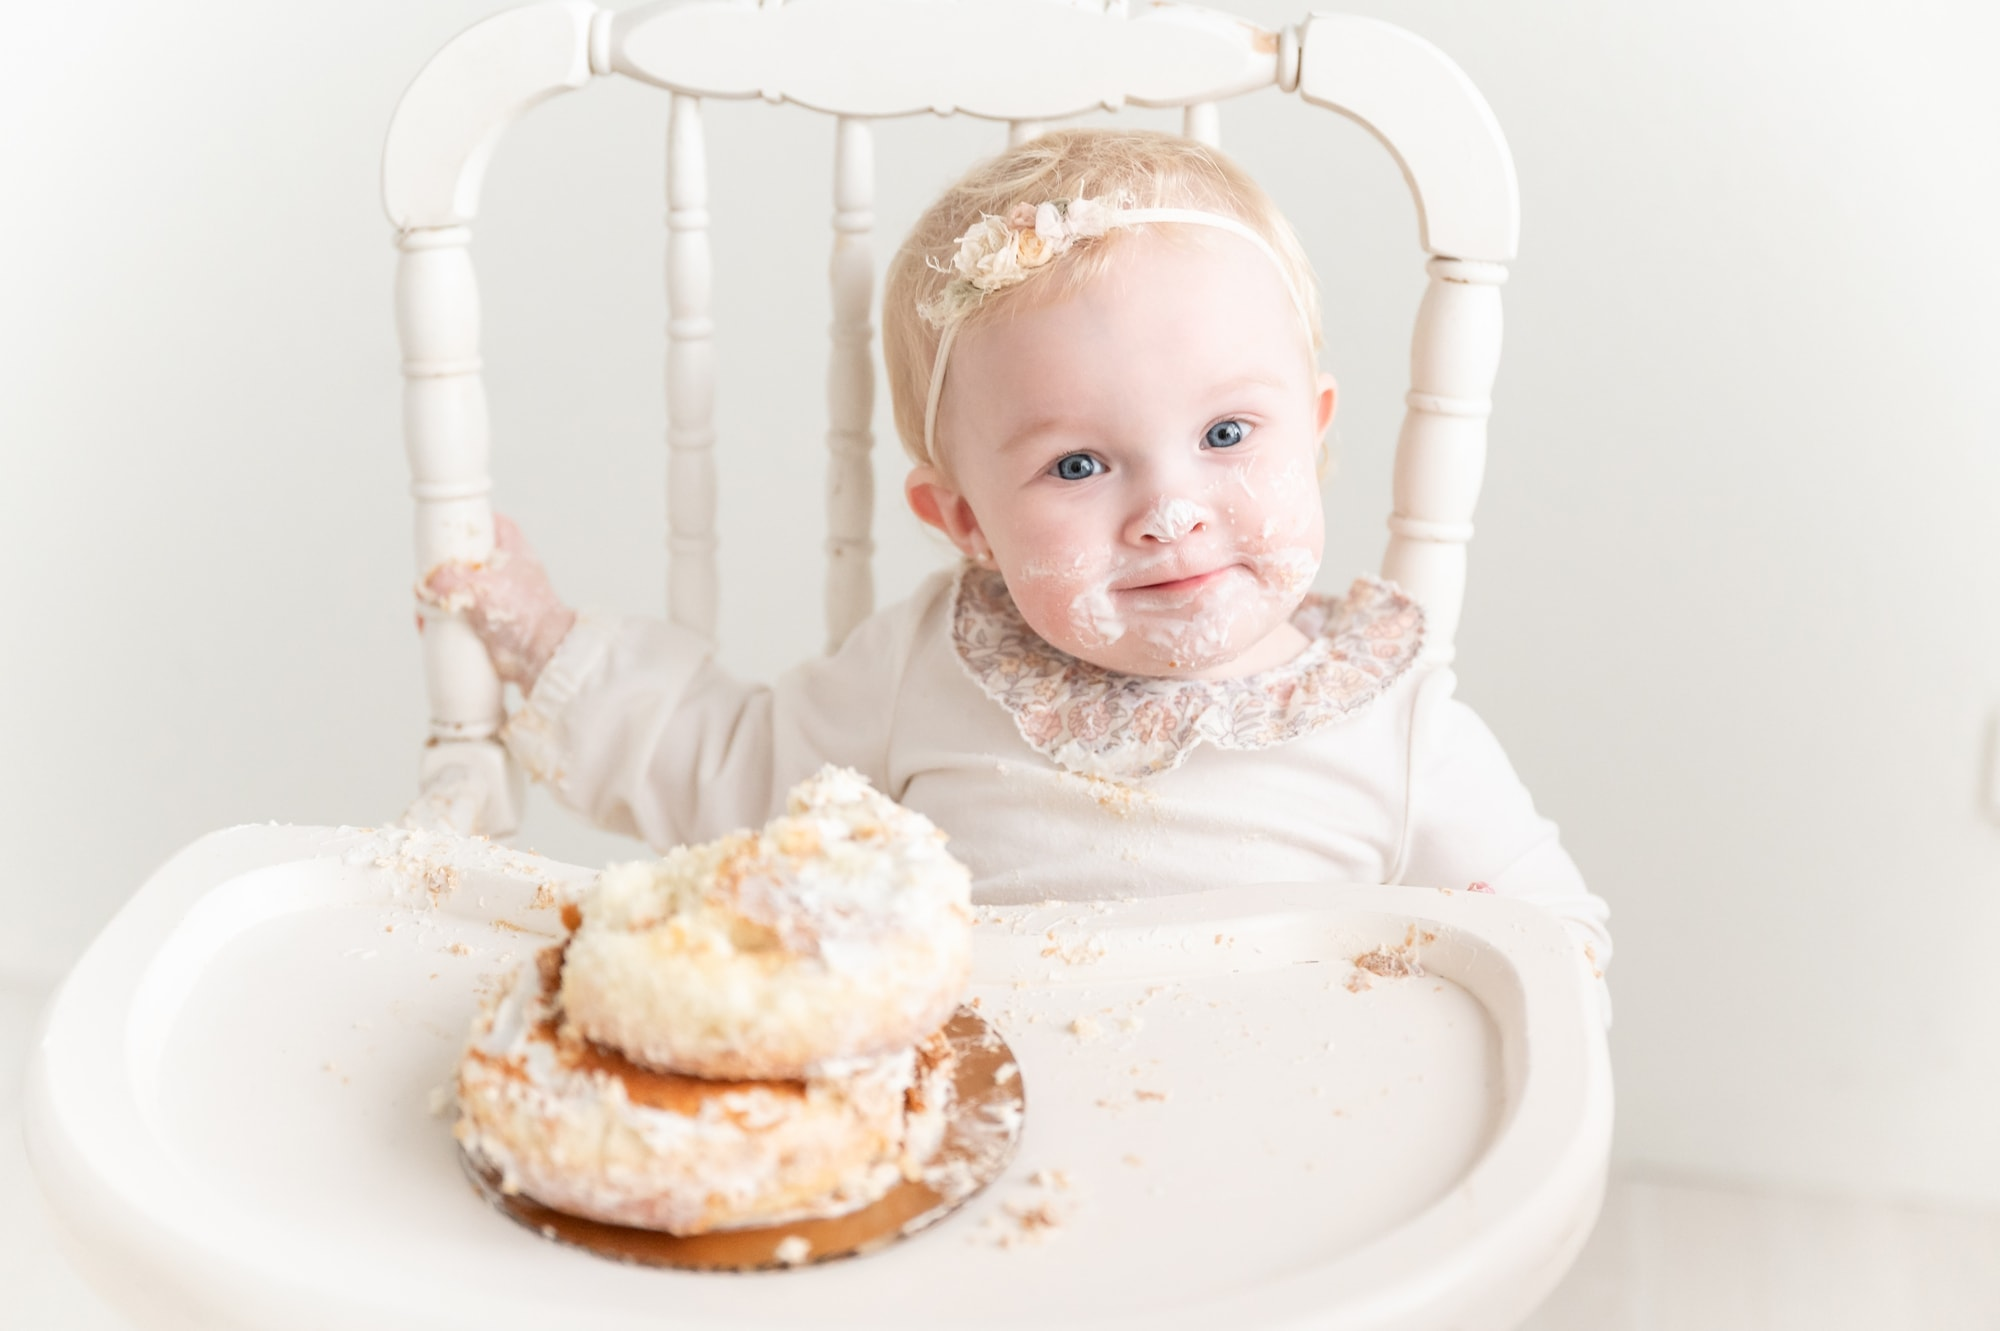 Closeup of little girl wearing floral headband during cake smash. Photo by Aimee Hamilton Photography.